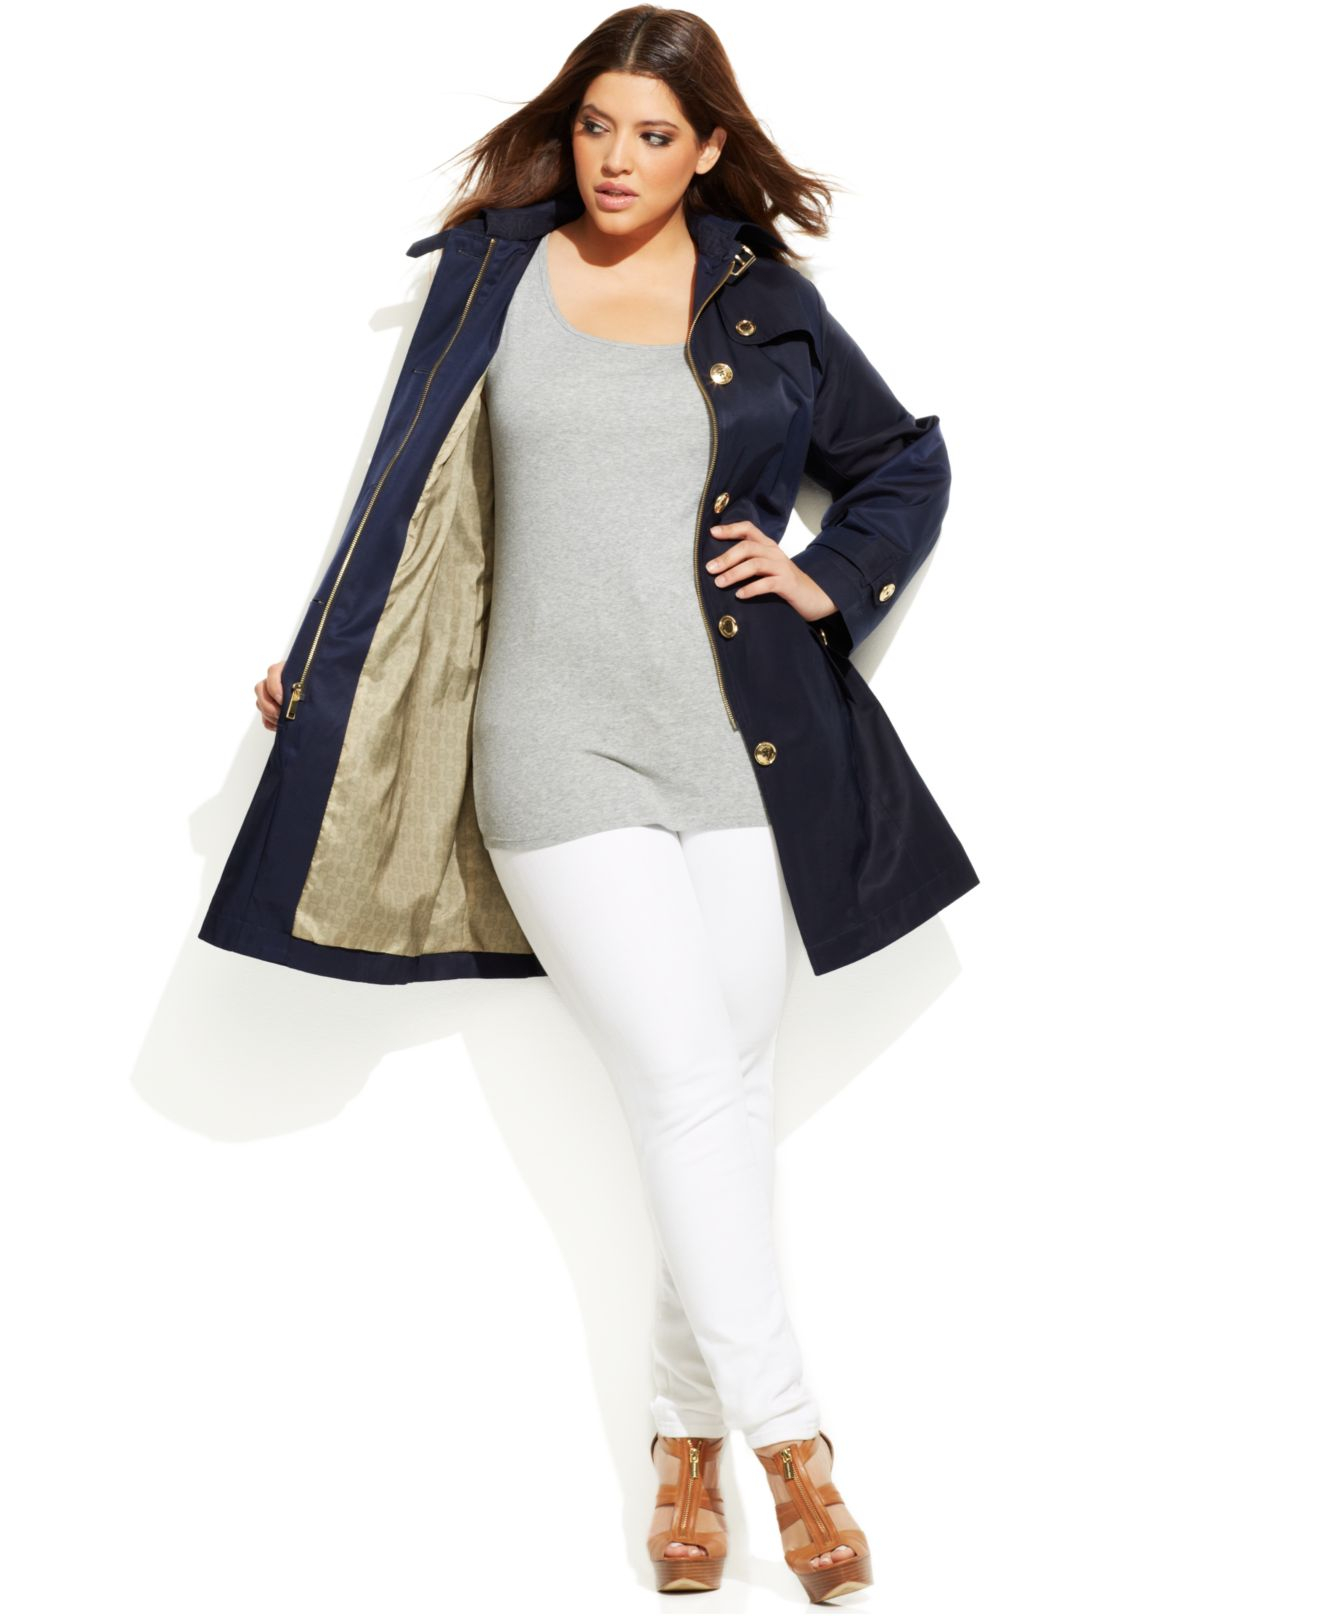 reasonable price big discount wholesale price Michael Kors Michael Plus Size Hooded Belted Trench Coat in Navy ...